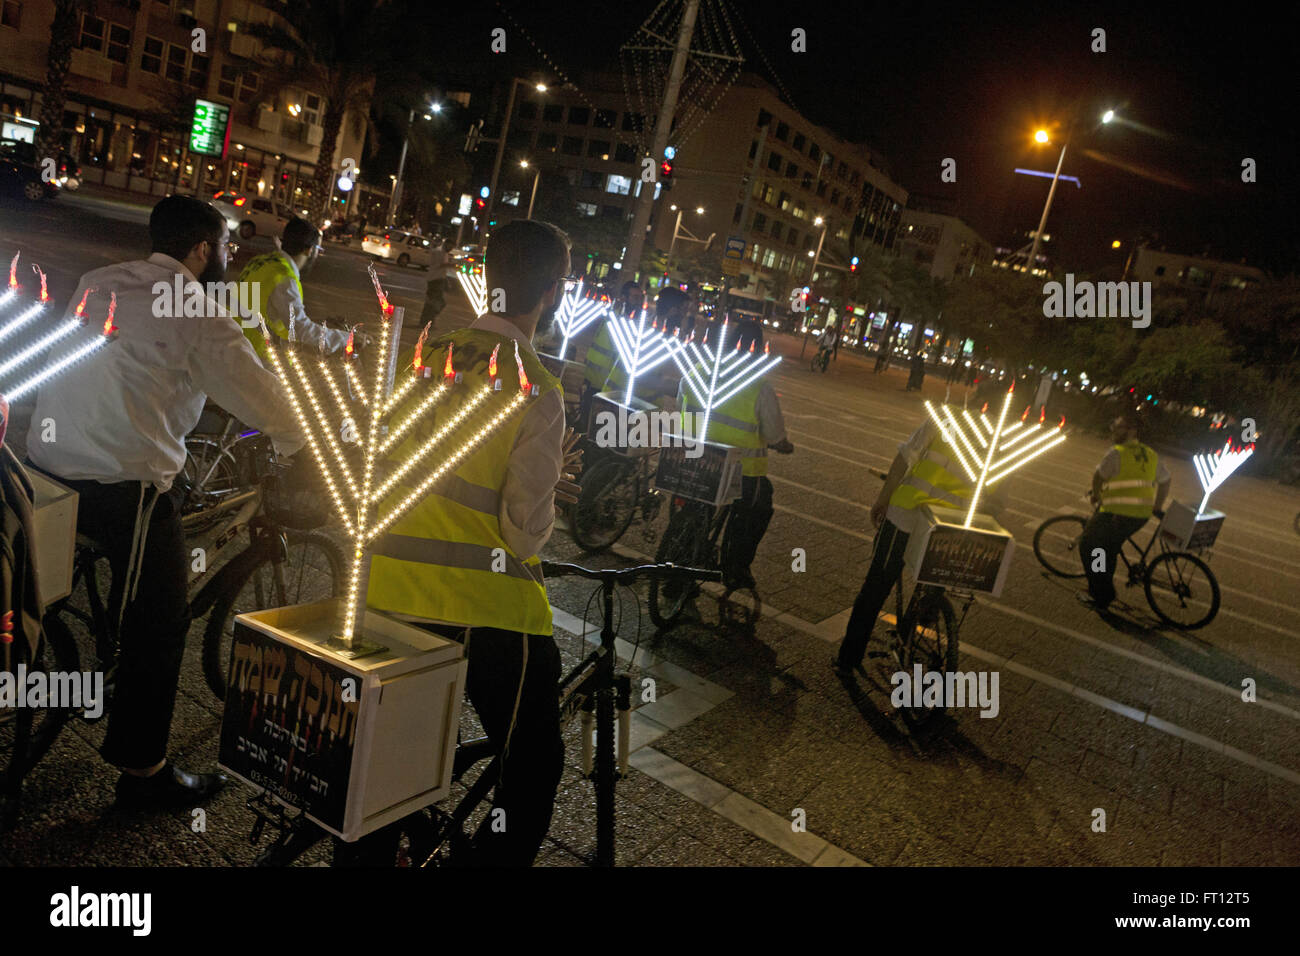 Image result for Hanukkah and bicycles